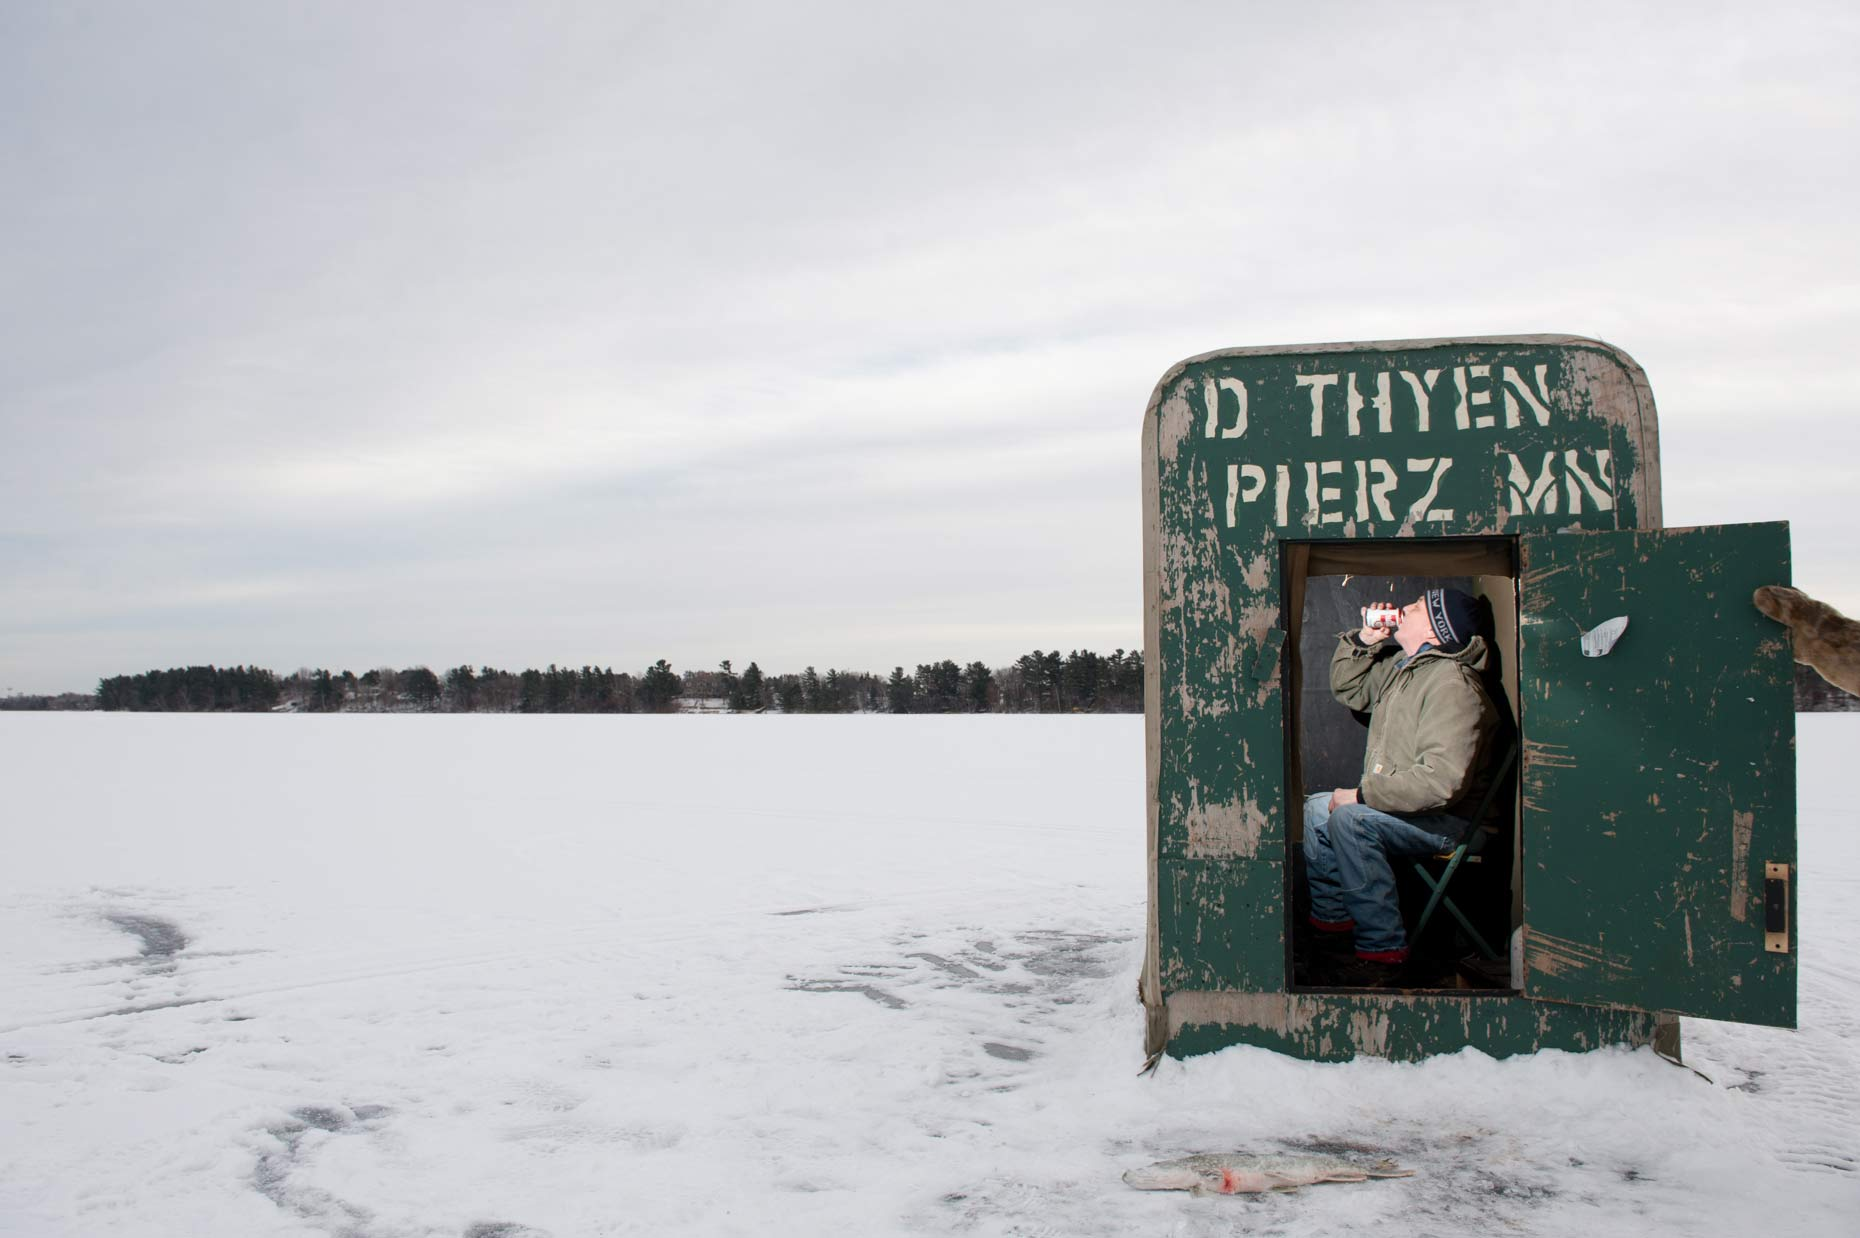 Ice fishing in Minnesota photographed by Jennifer May